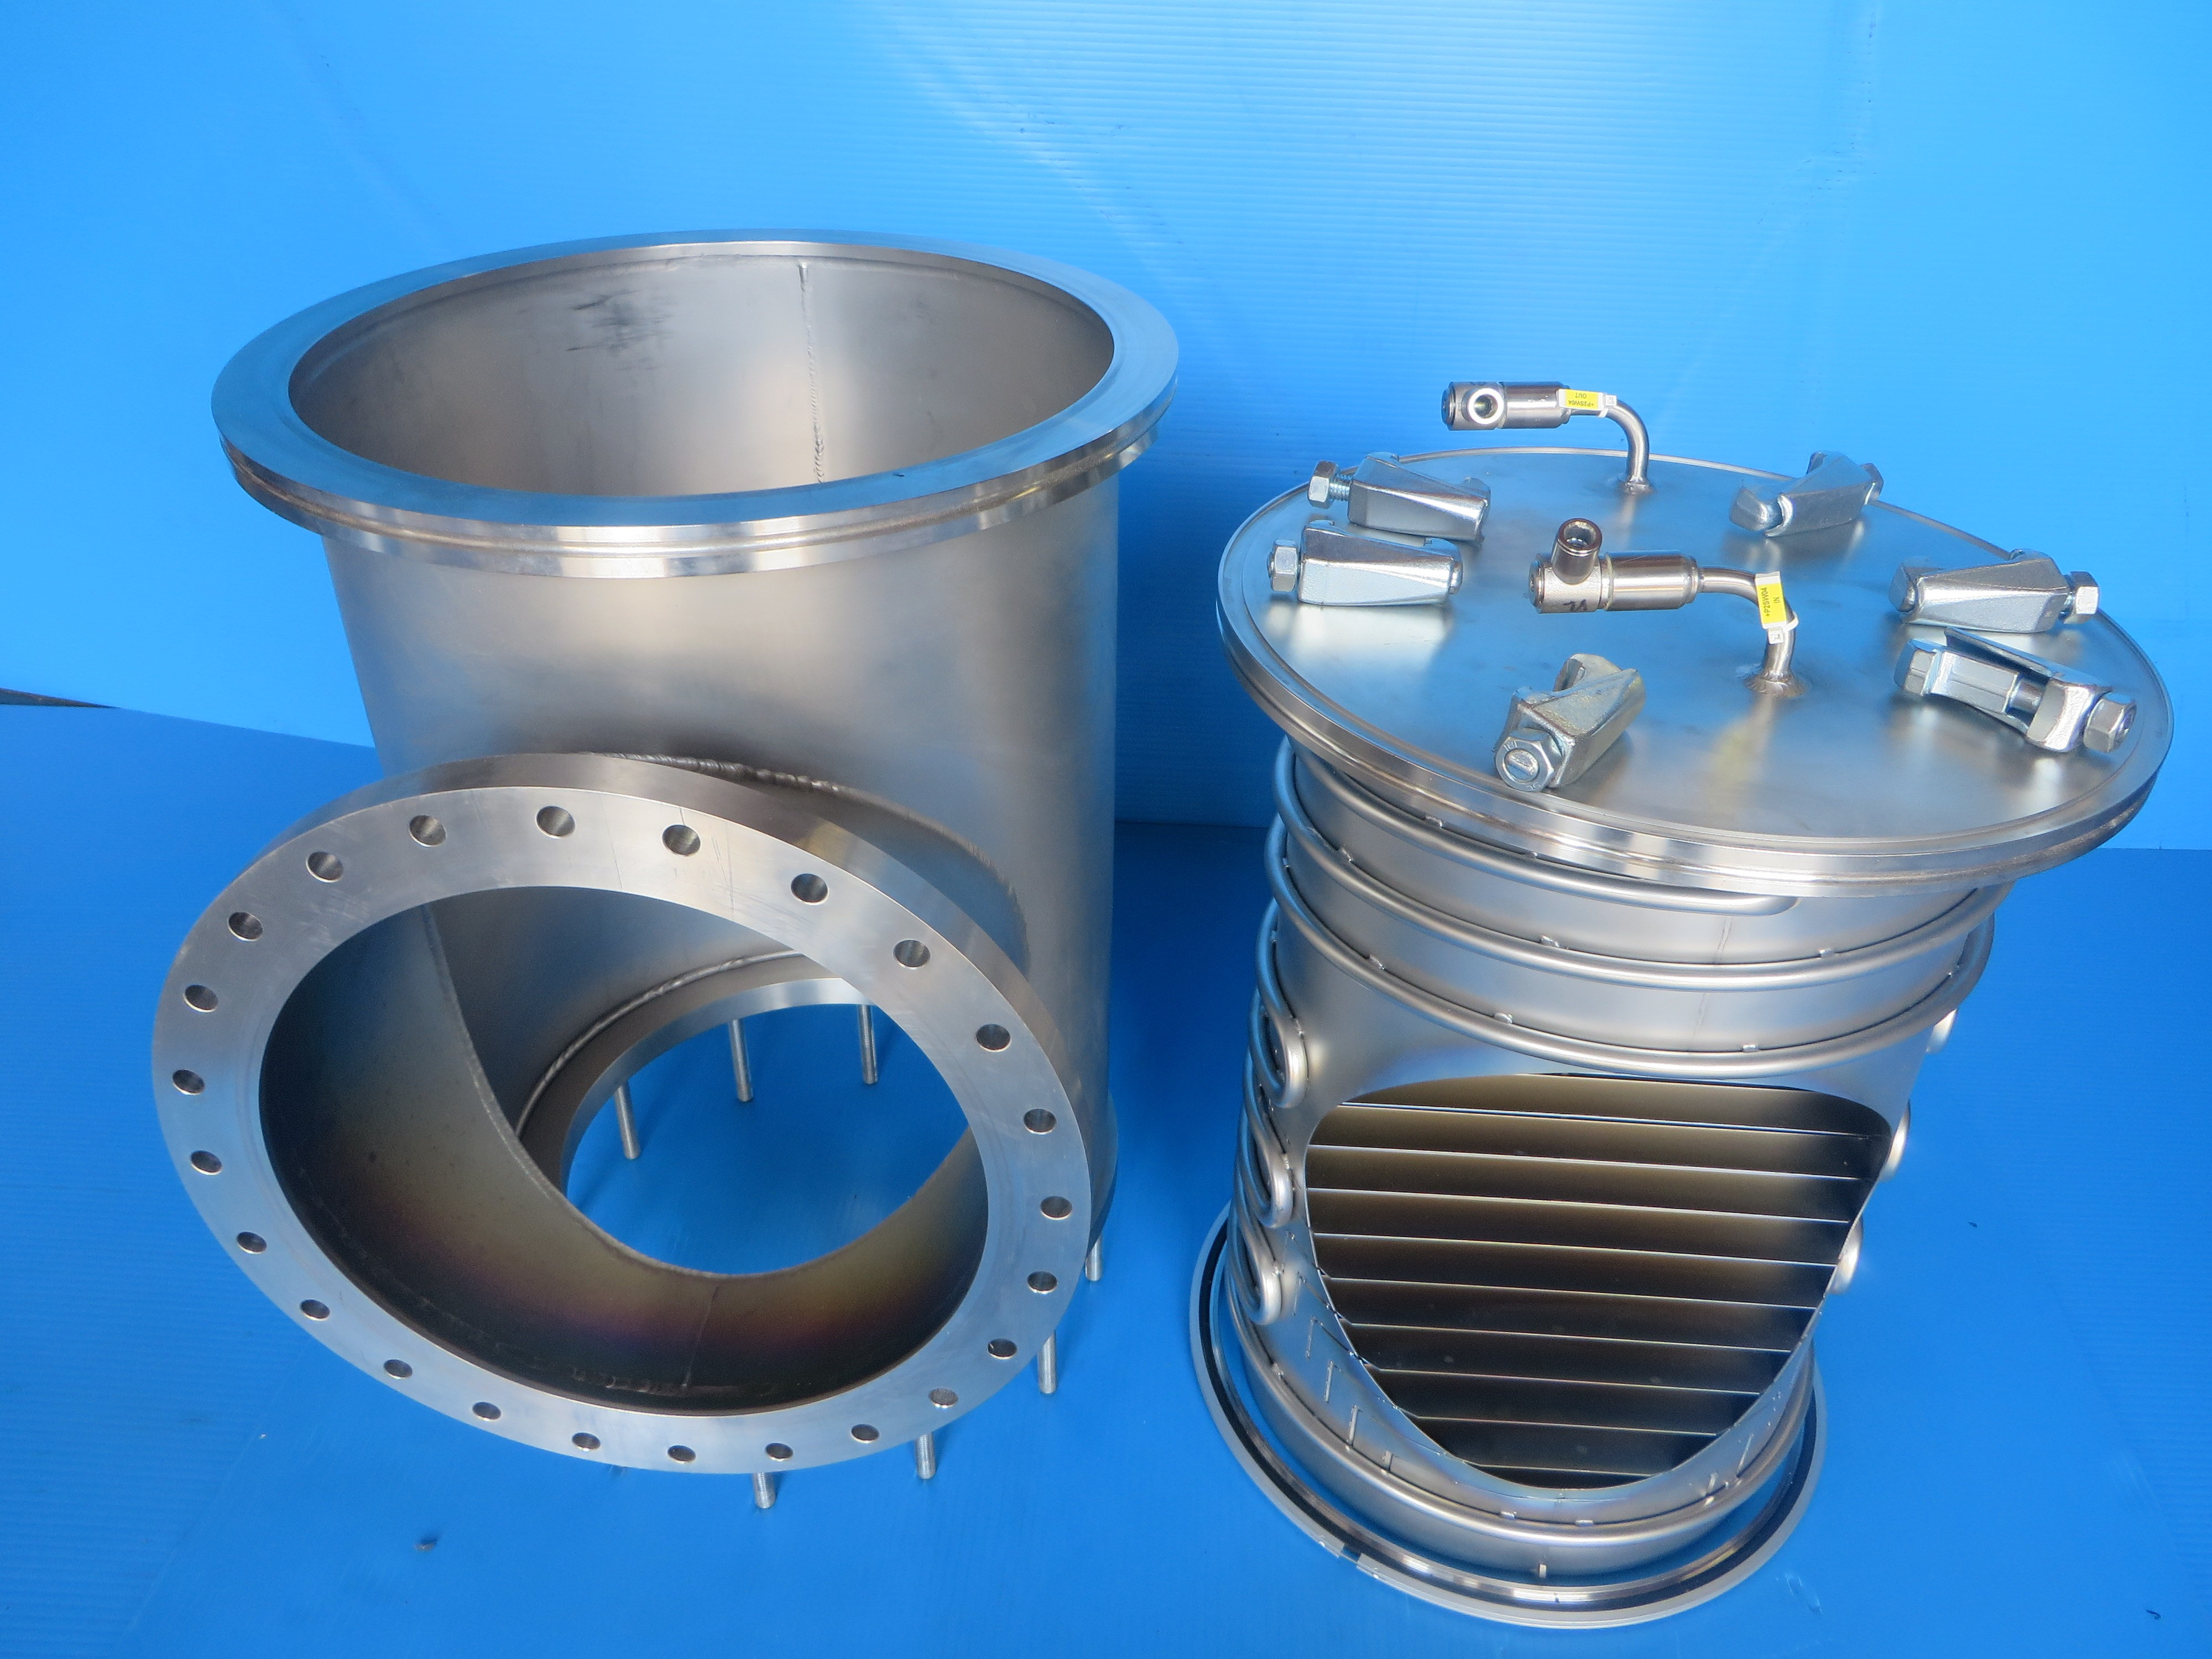 Leybold UHV Reactor and Chamber - ISO-320 Top ISO-250 Side and Bottom